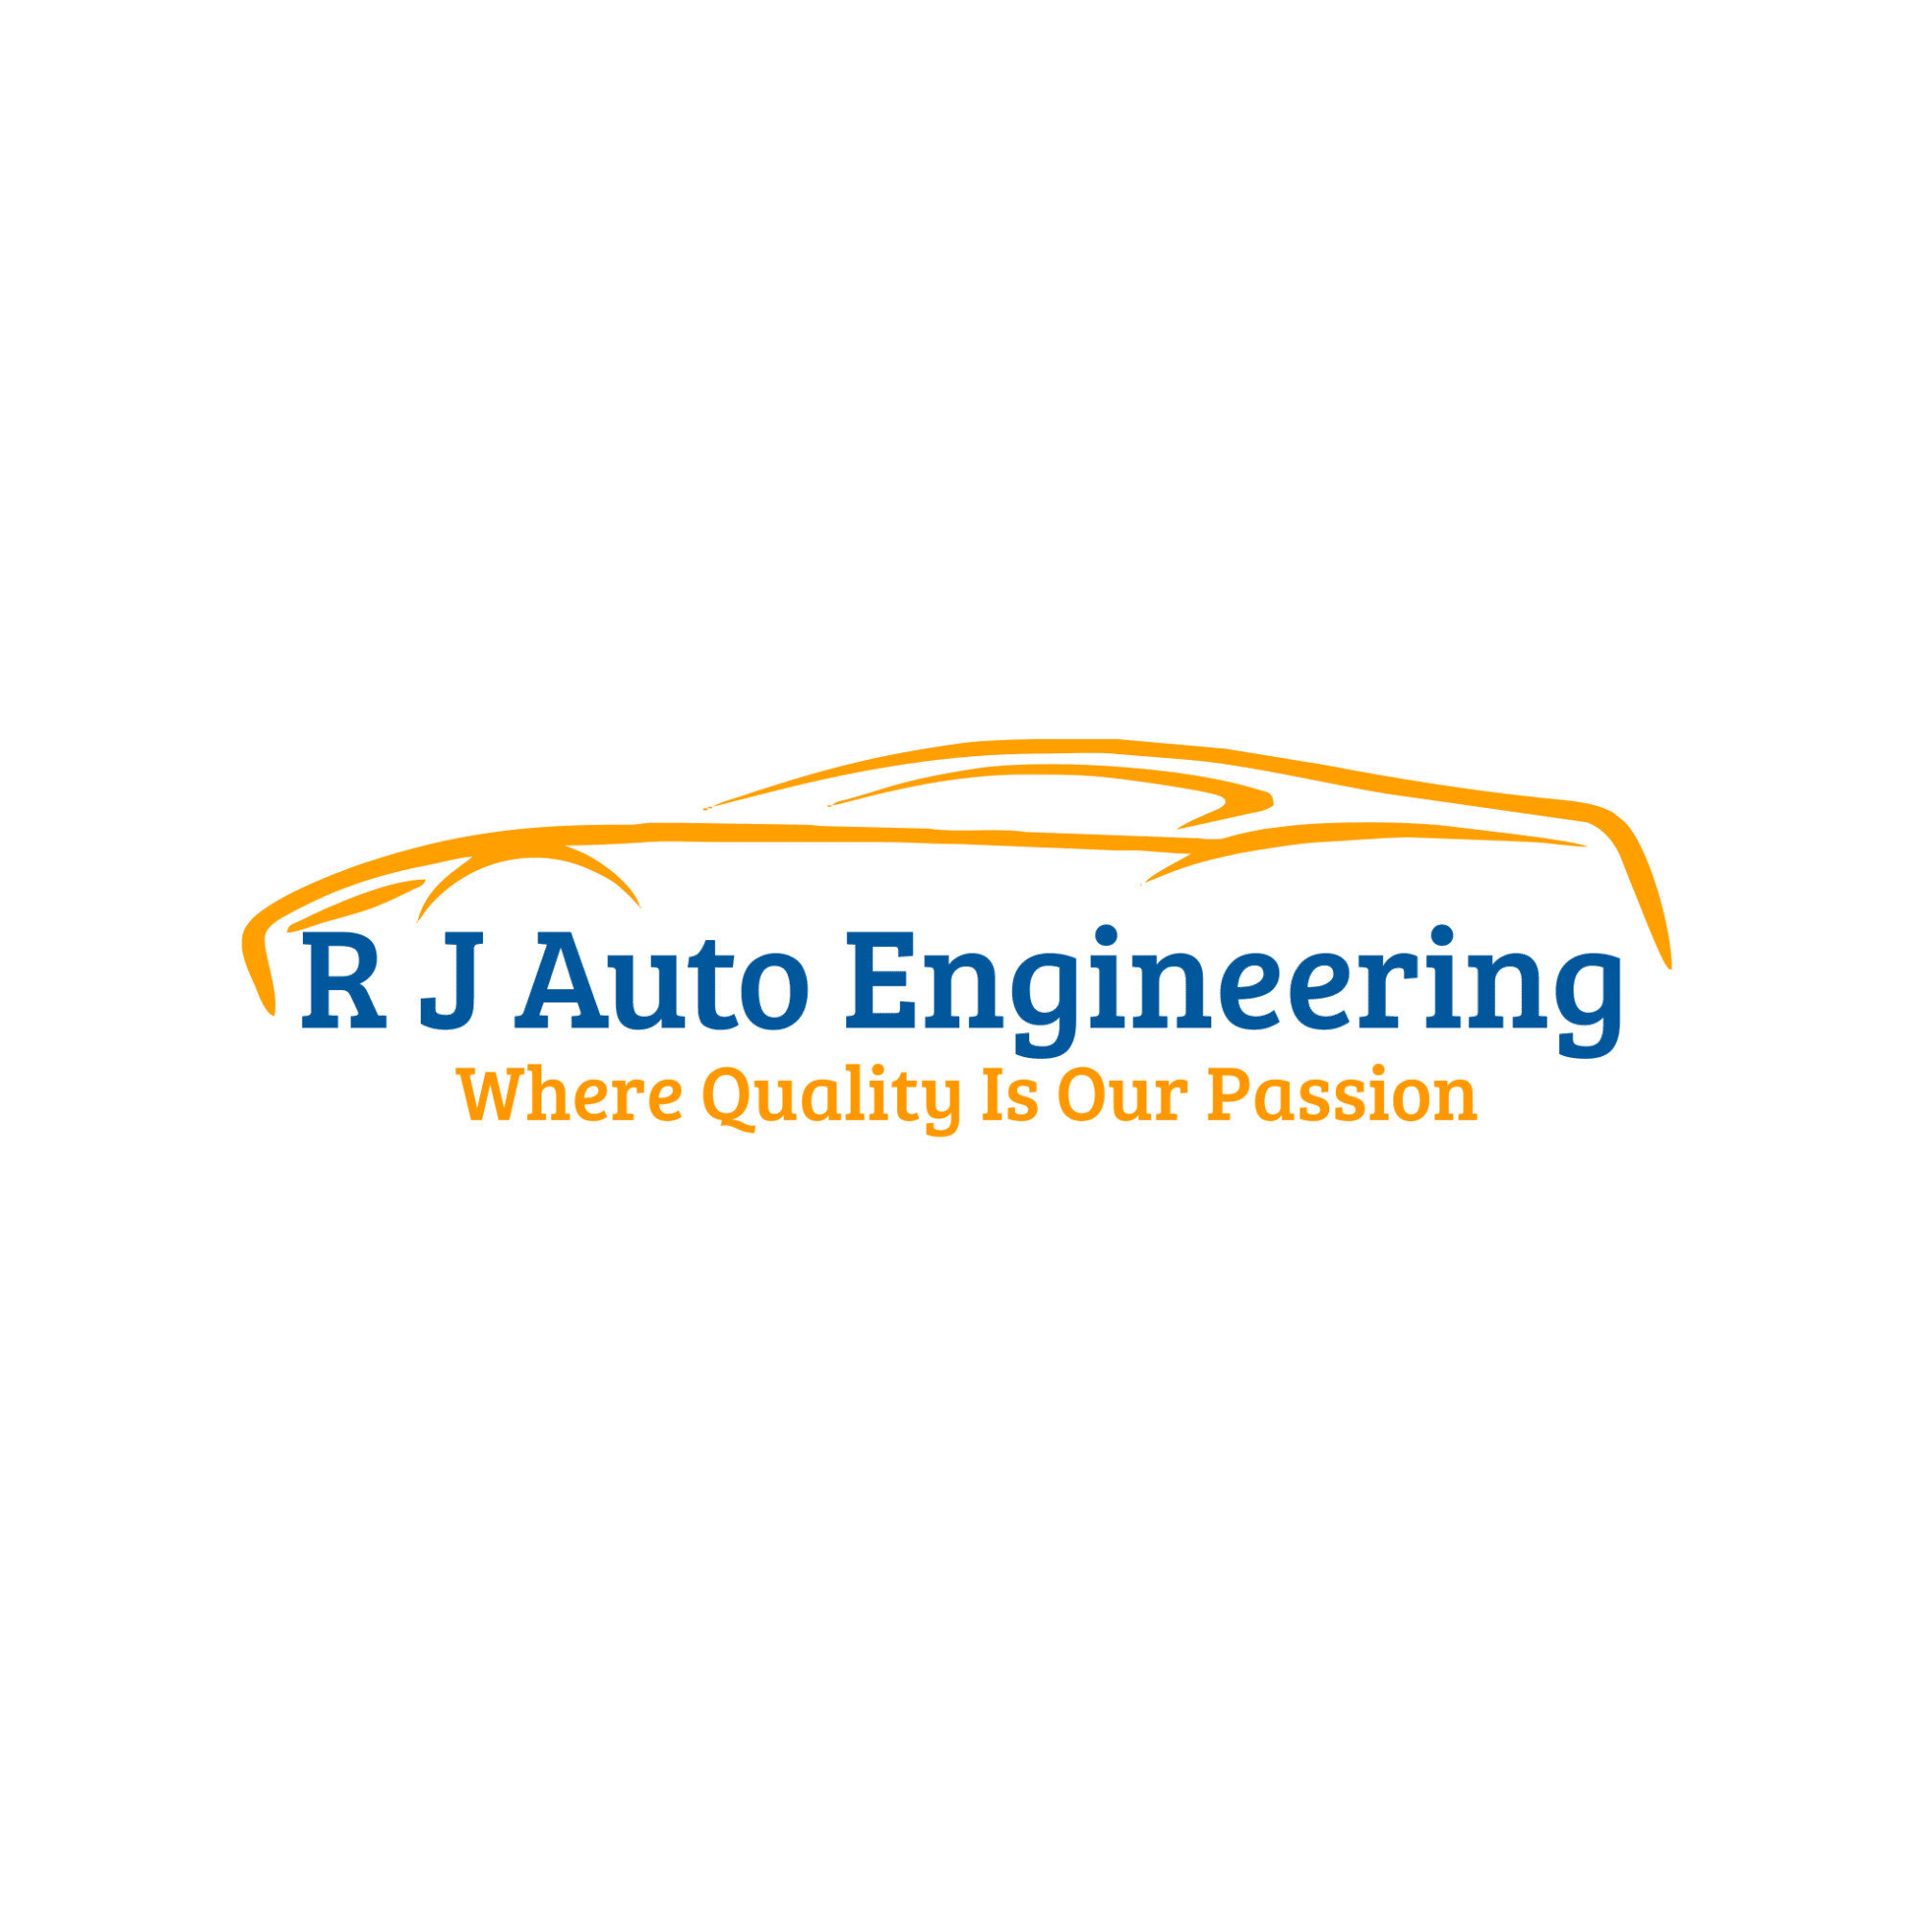 R J Auto Engineering - Martock, Somerset TA12 6HB - 07493 745245 | ShowMeLocal.com